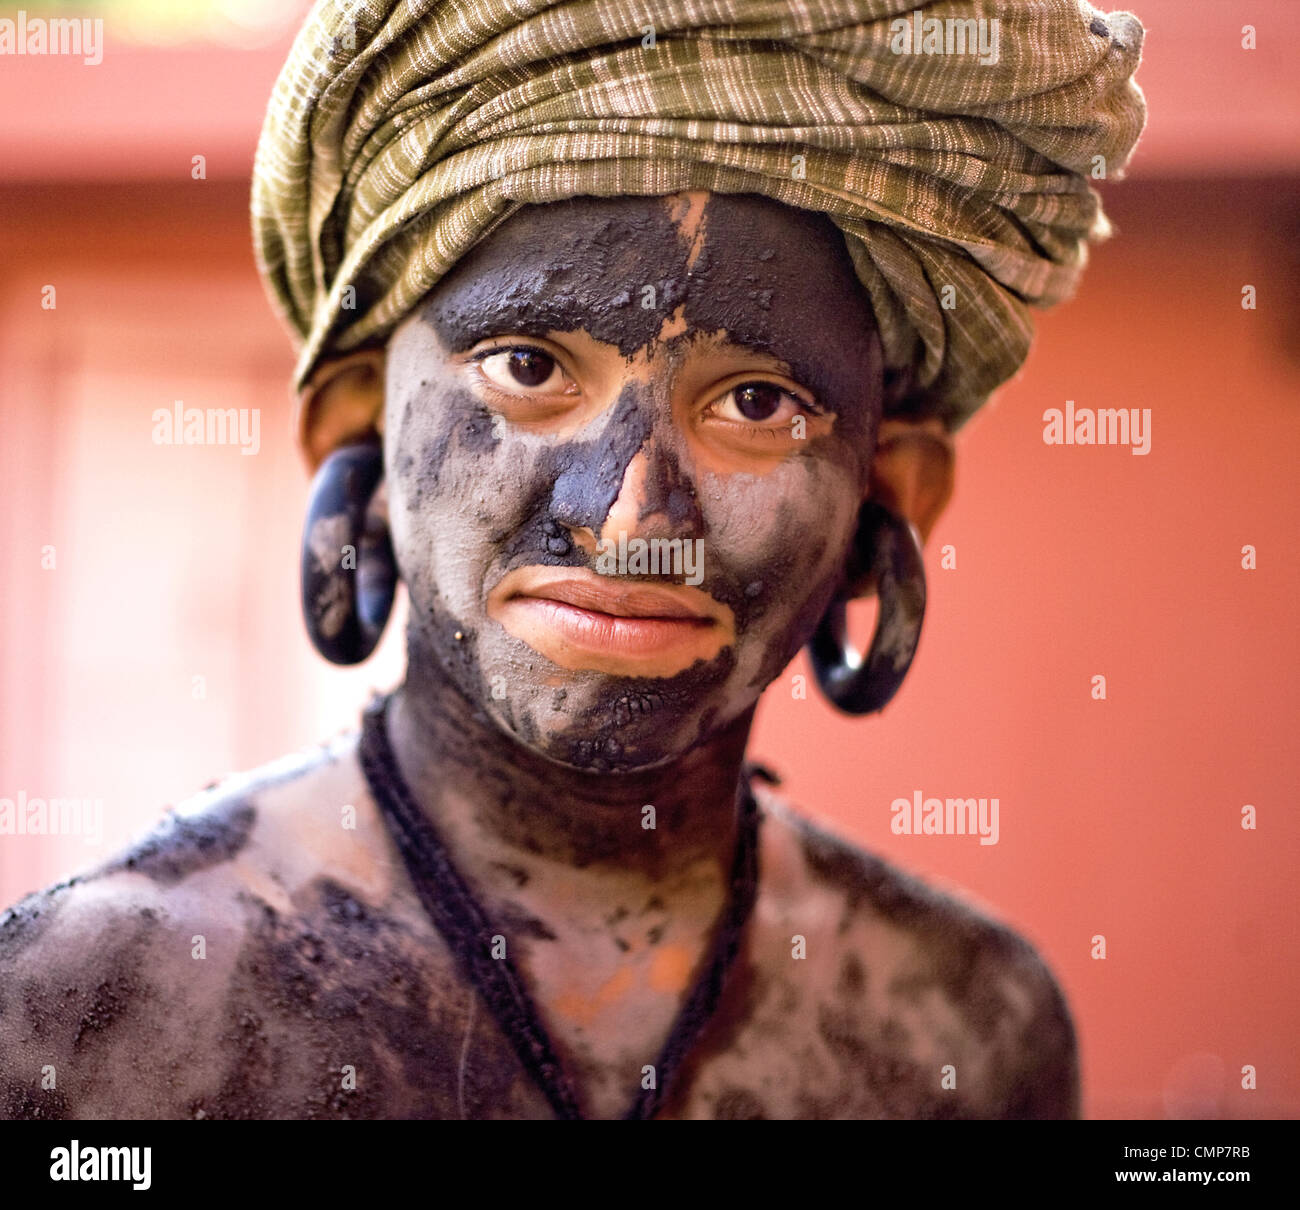 Indian holy man belonged to the Nath division of sadhus - Stock Image